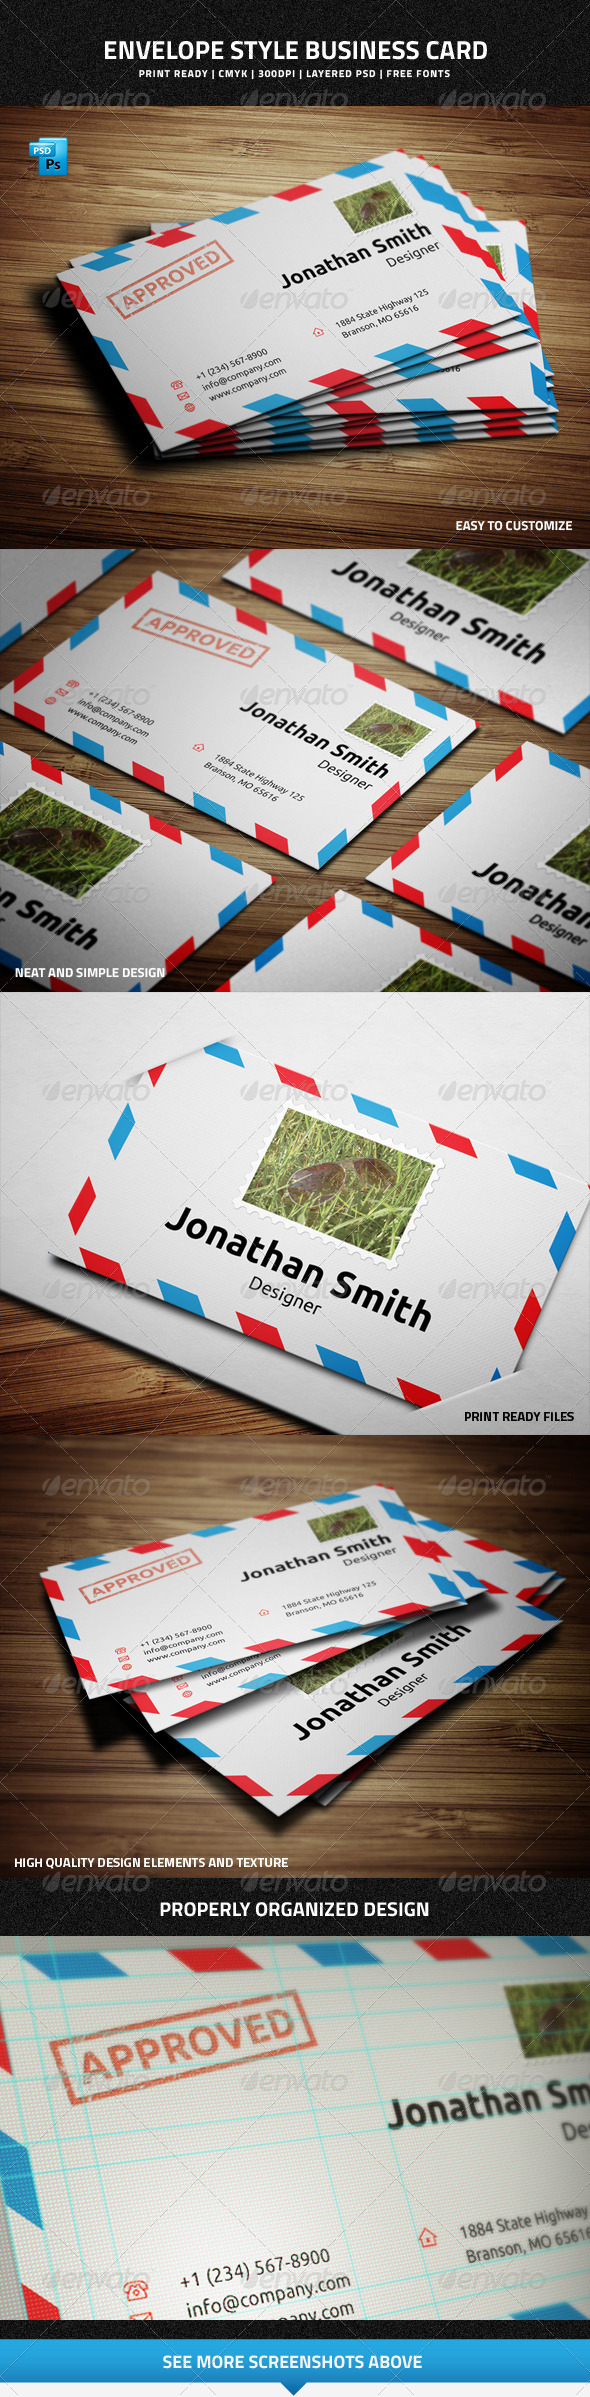 GraphicRiver Envelope Style Business Card 7225817